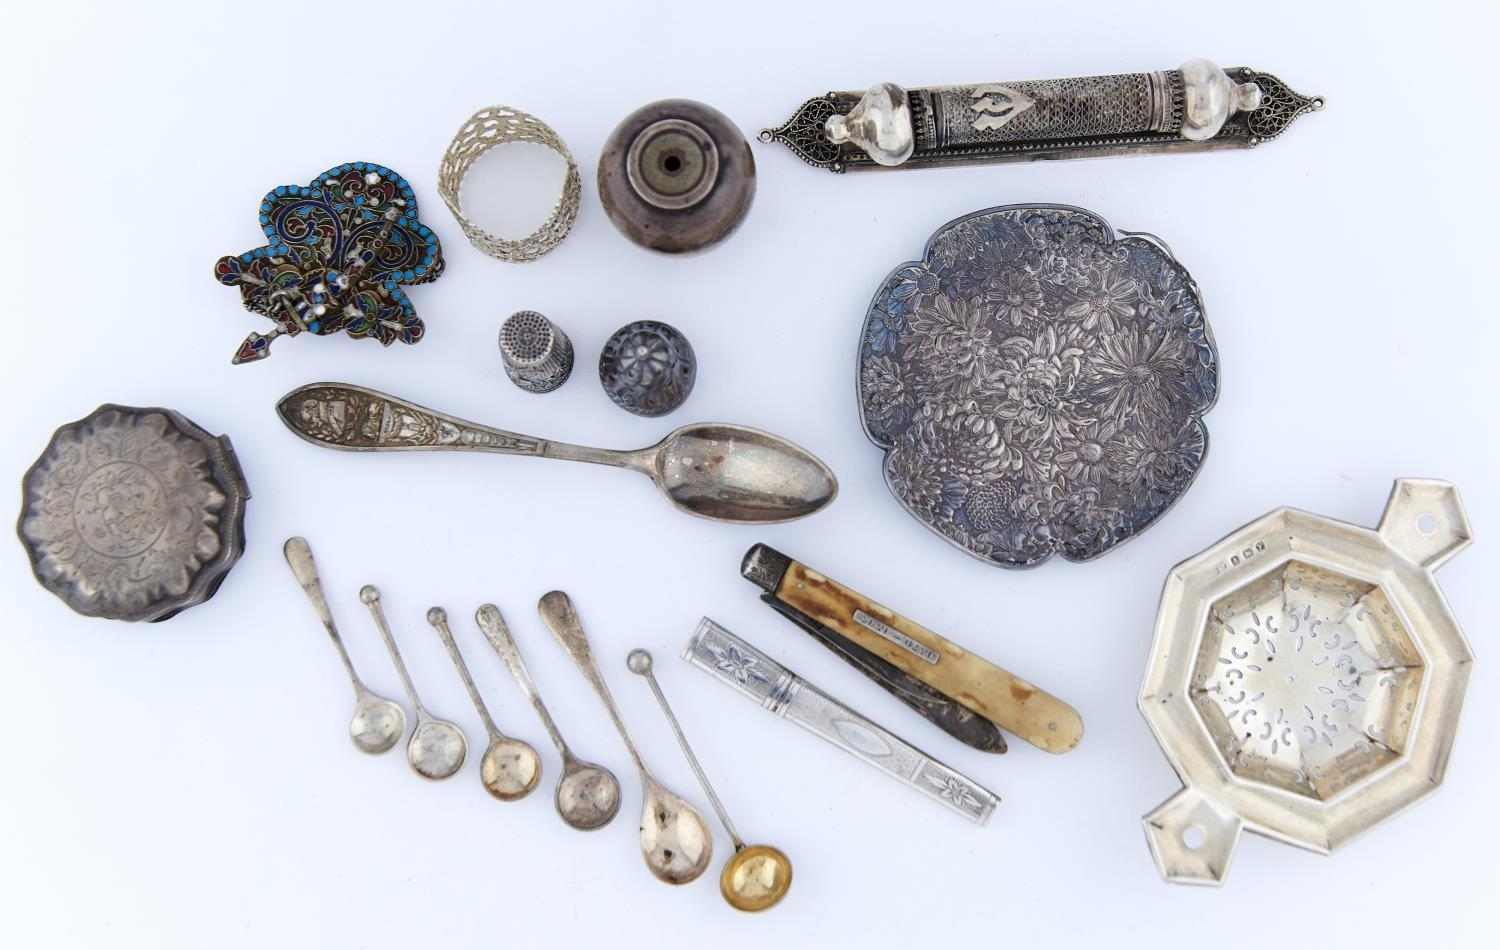 A SILVER TEA STRAINER AND MISCELLANEOUS OTHER ENGLISH AND FOREIGN SILVER ARTICLES, TO INCLUDE ONE